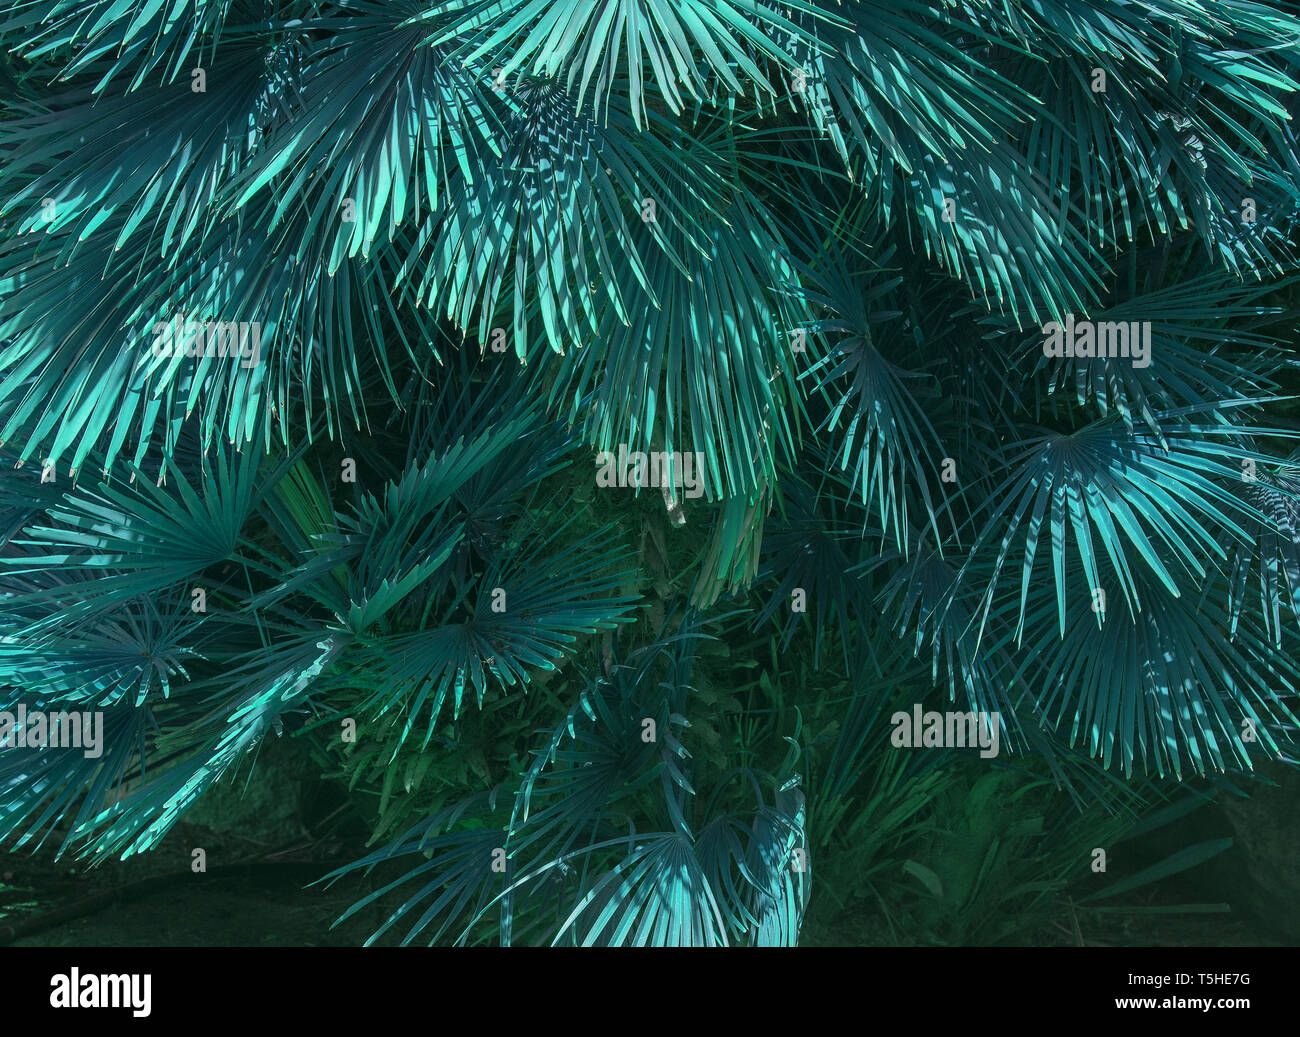 Mallorca endemic fan palm Chamaerops humilis lush leaves in sunshine abstract teale color. - Stock Image